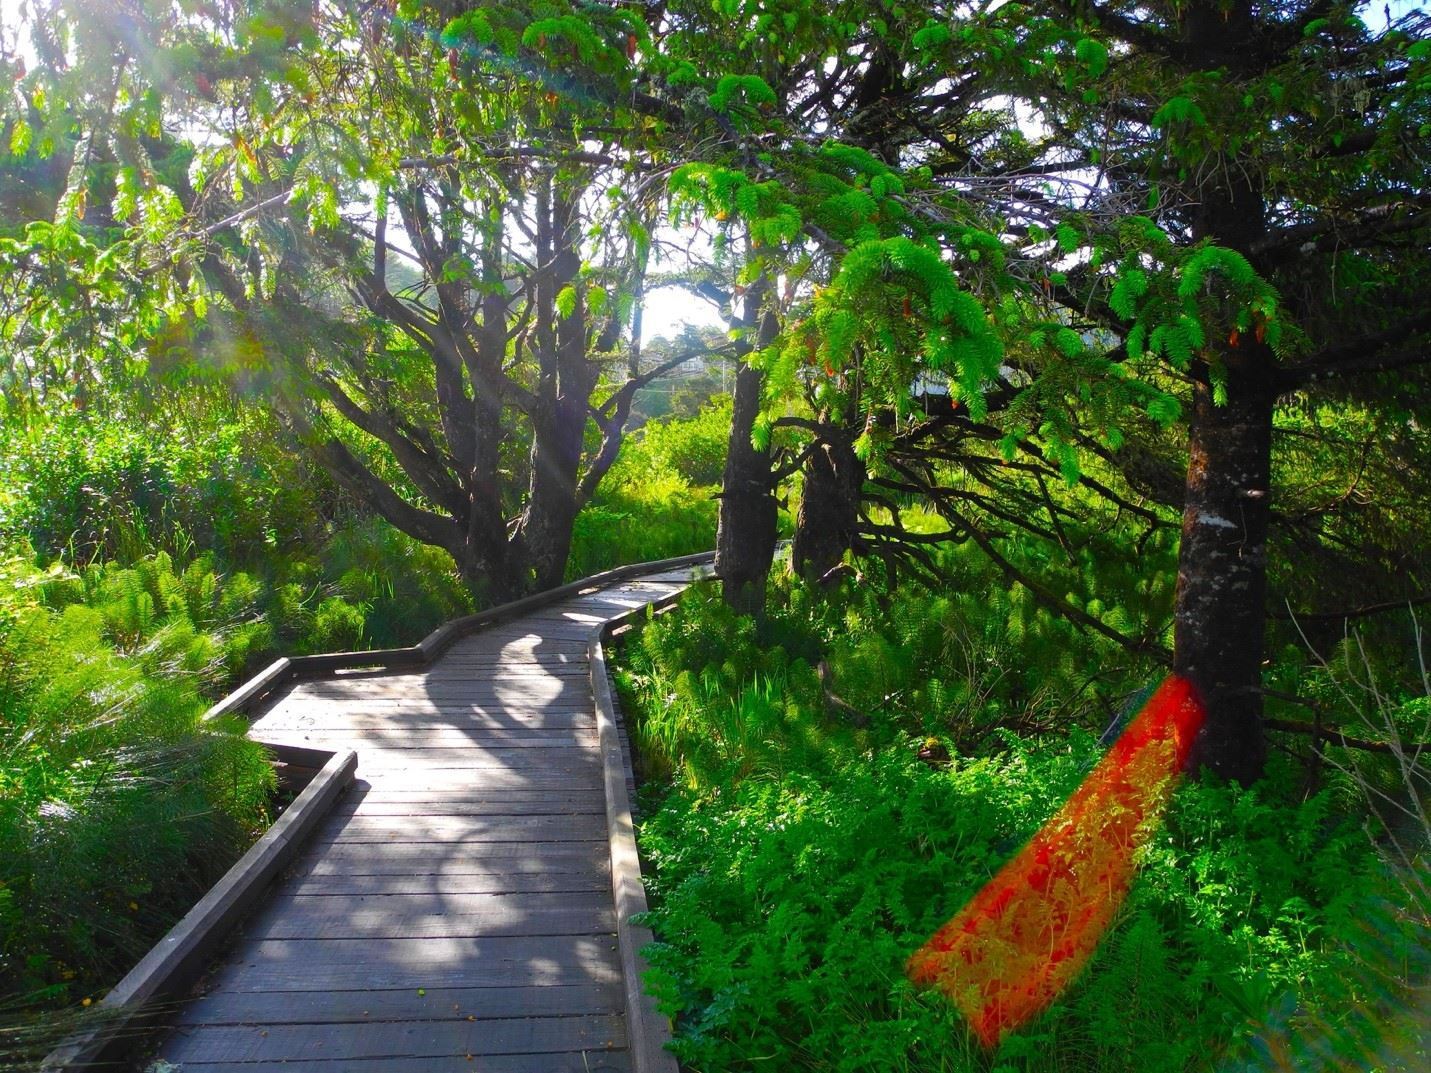 Boardwalk Path Through Green Trees and Foliage Opens in new window